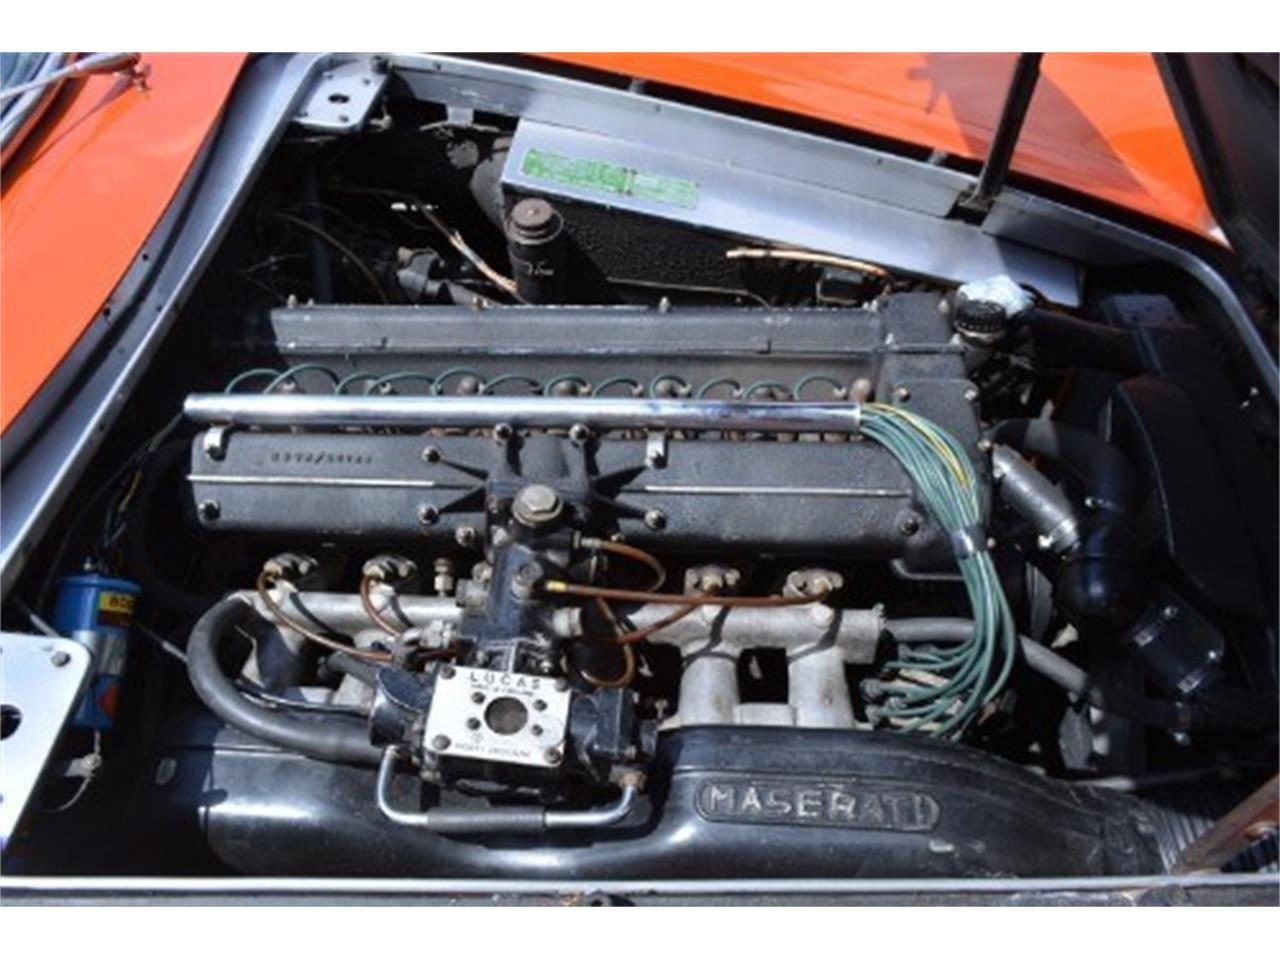 Large Picture of 1963 Maserati 3500 - $199,500.00 Offered by Gullwing Motor Cars - MKFN